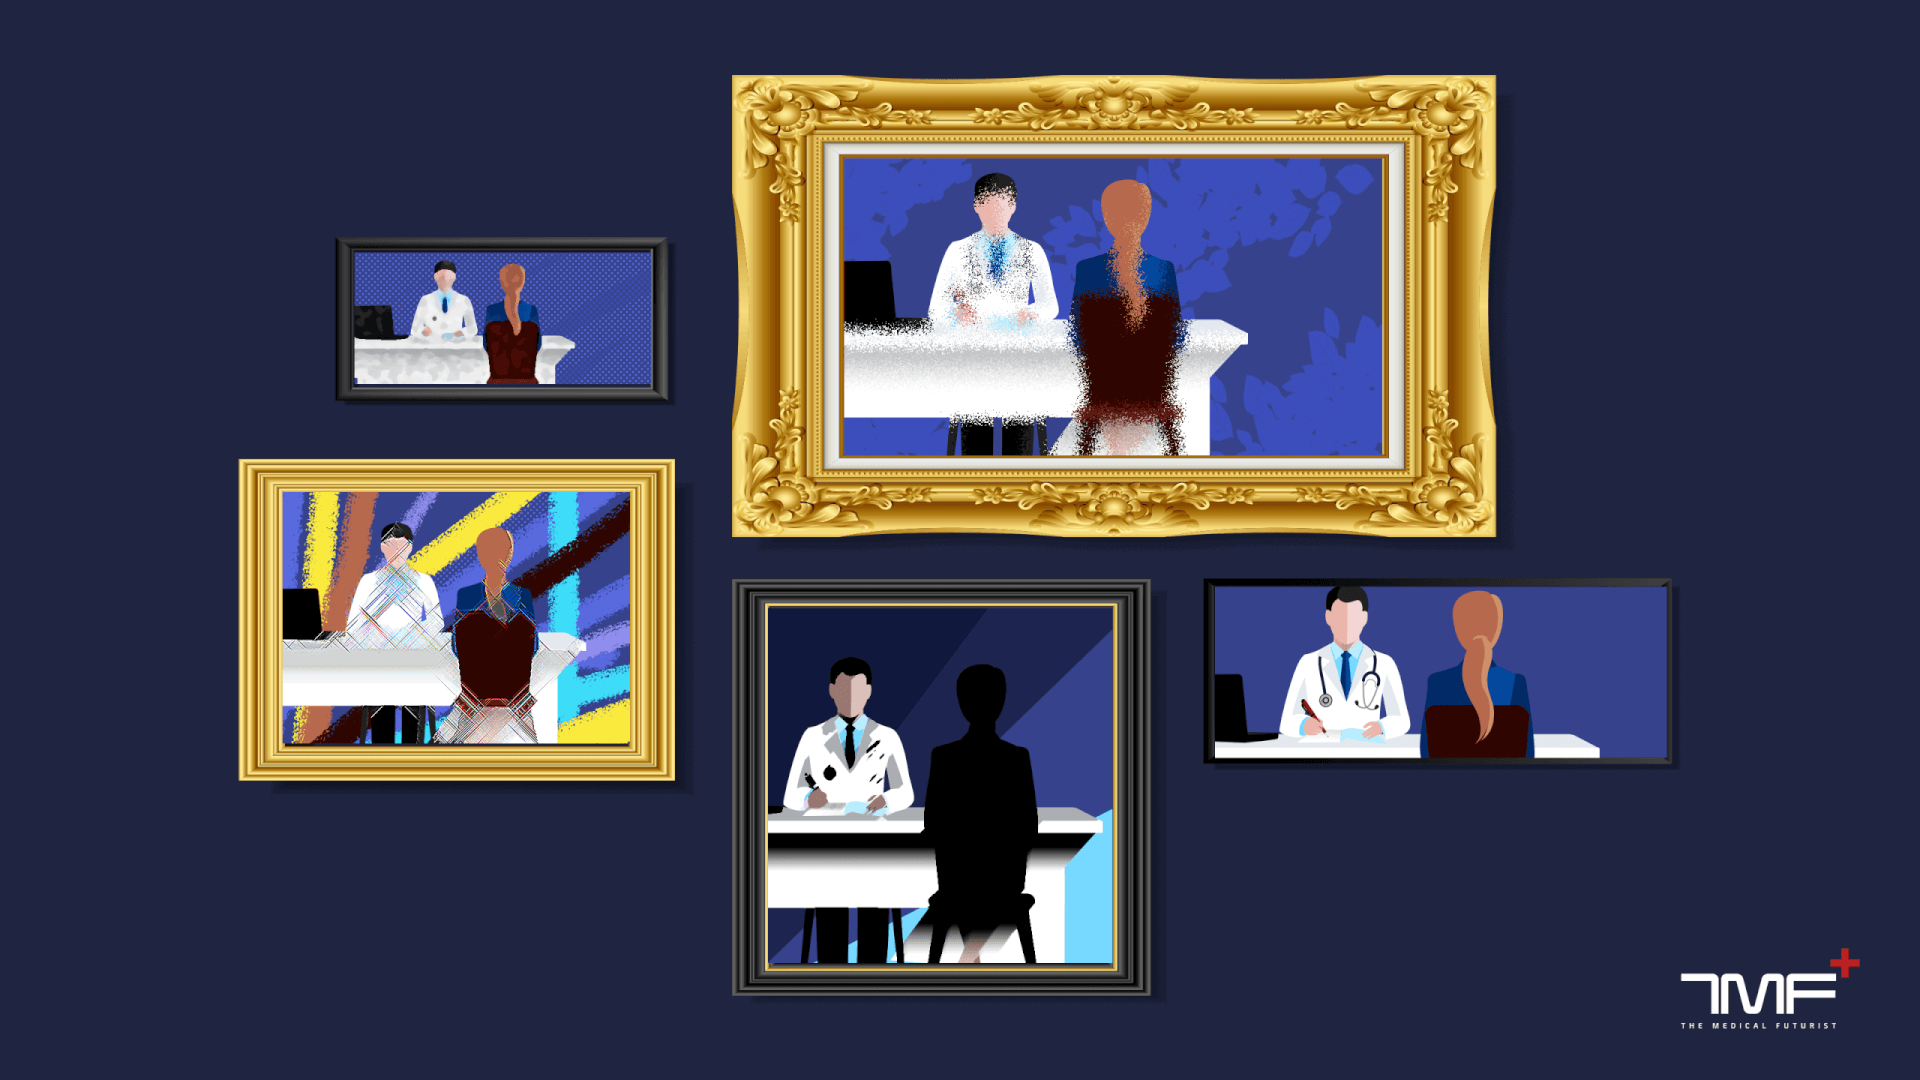 The Real Era of The Art of Medicine Begins With Artificial Intelligence - The Medical Futurist